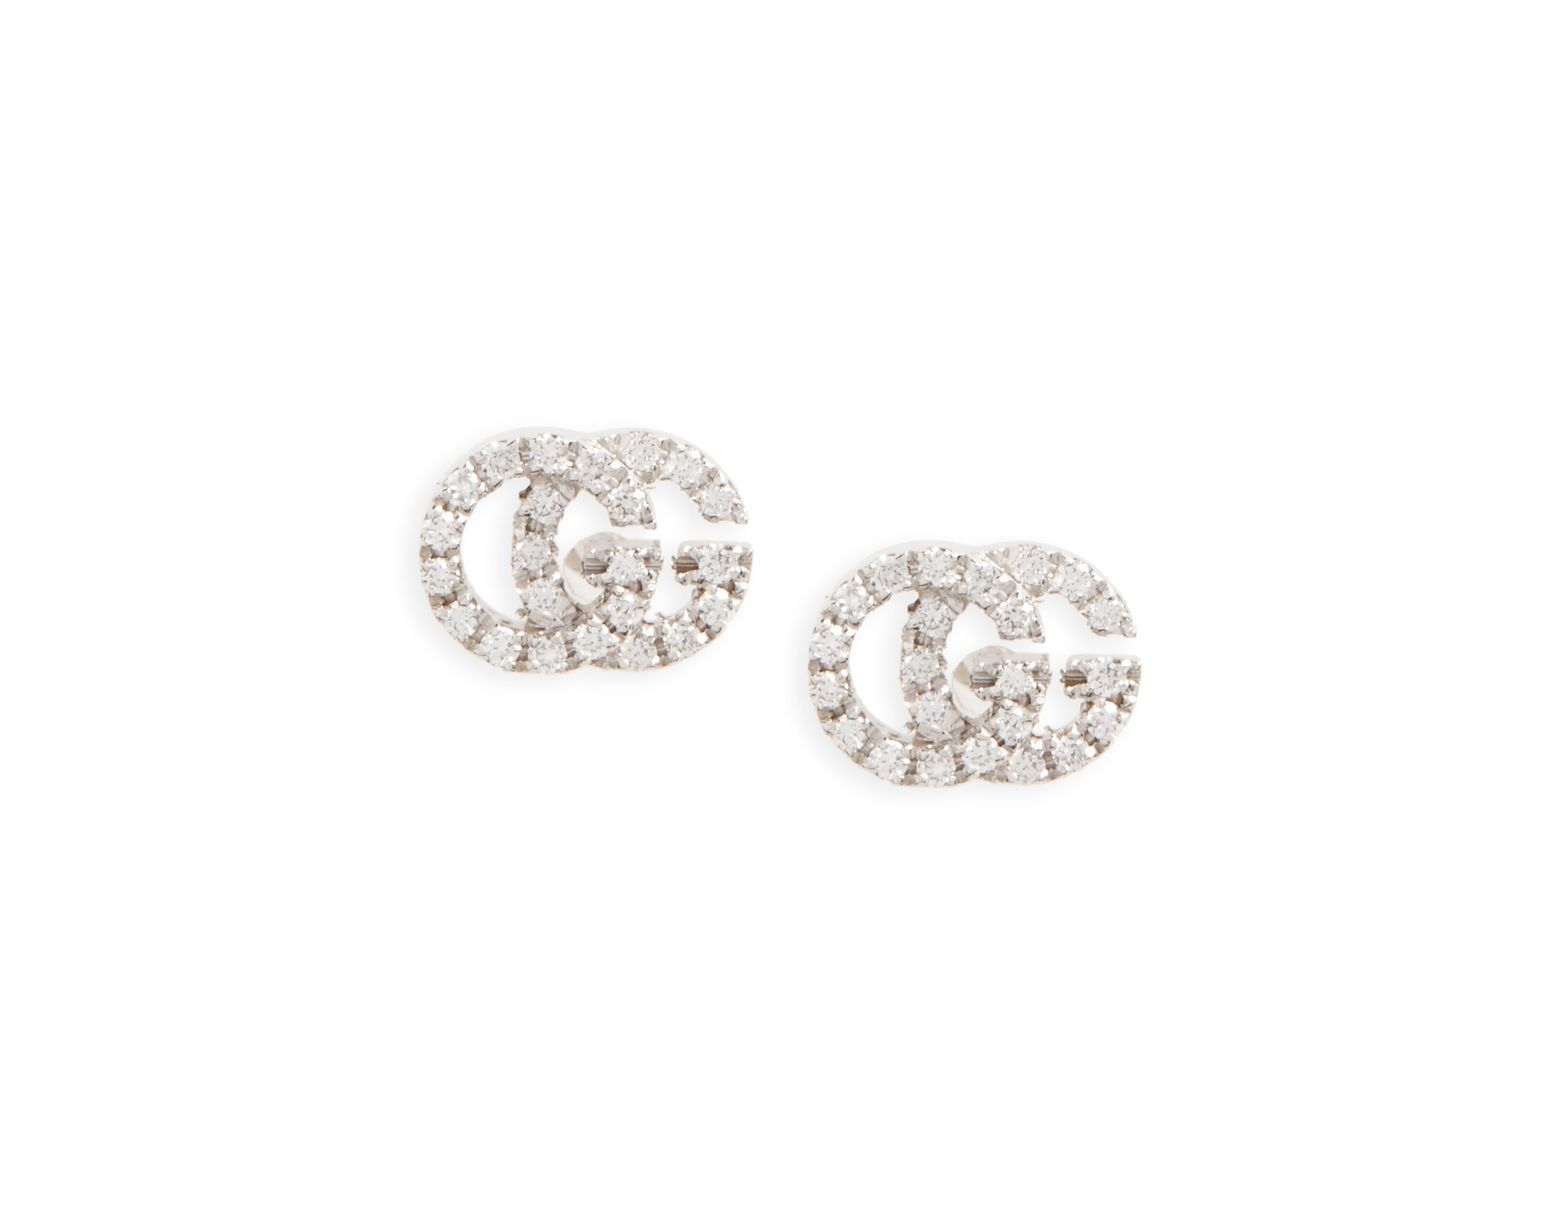 882b424ee Gucci Women's 18k White Gold & Diamond Double G Studs - White Gold in  Metallic - Save 7% - Lyst